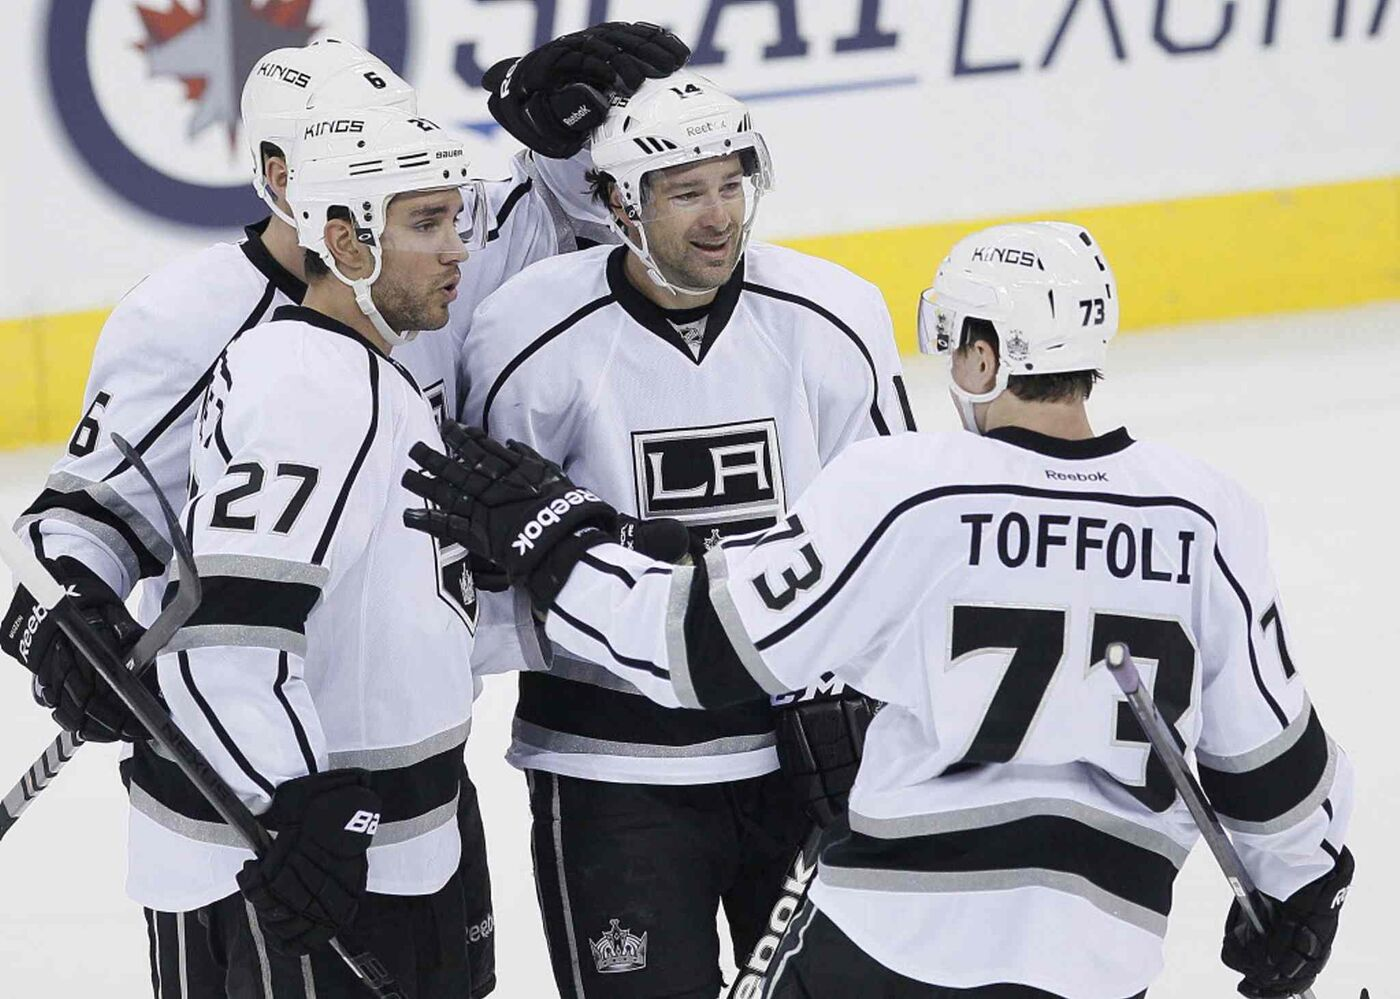 Los Angeles Kings' Jake Muzzin (6), Alec Martinez (27), Justin Williams (14) and Tyler Toffoli (73) celebrate Martinez's goal against the Winnipeg Jets during third period NHL action.